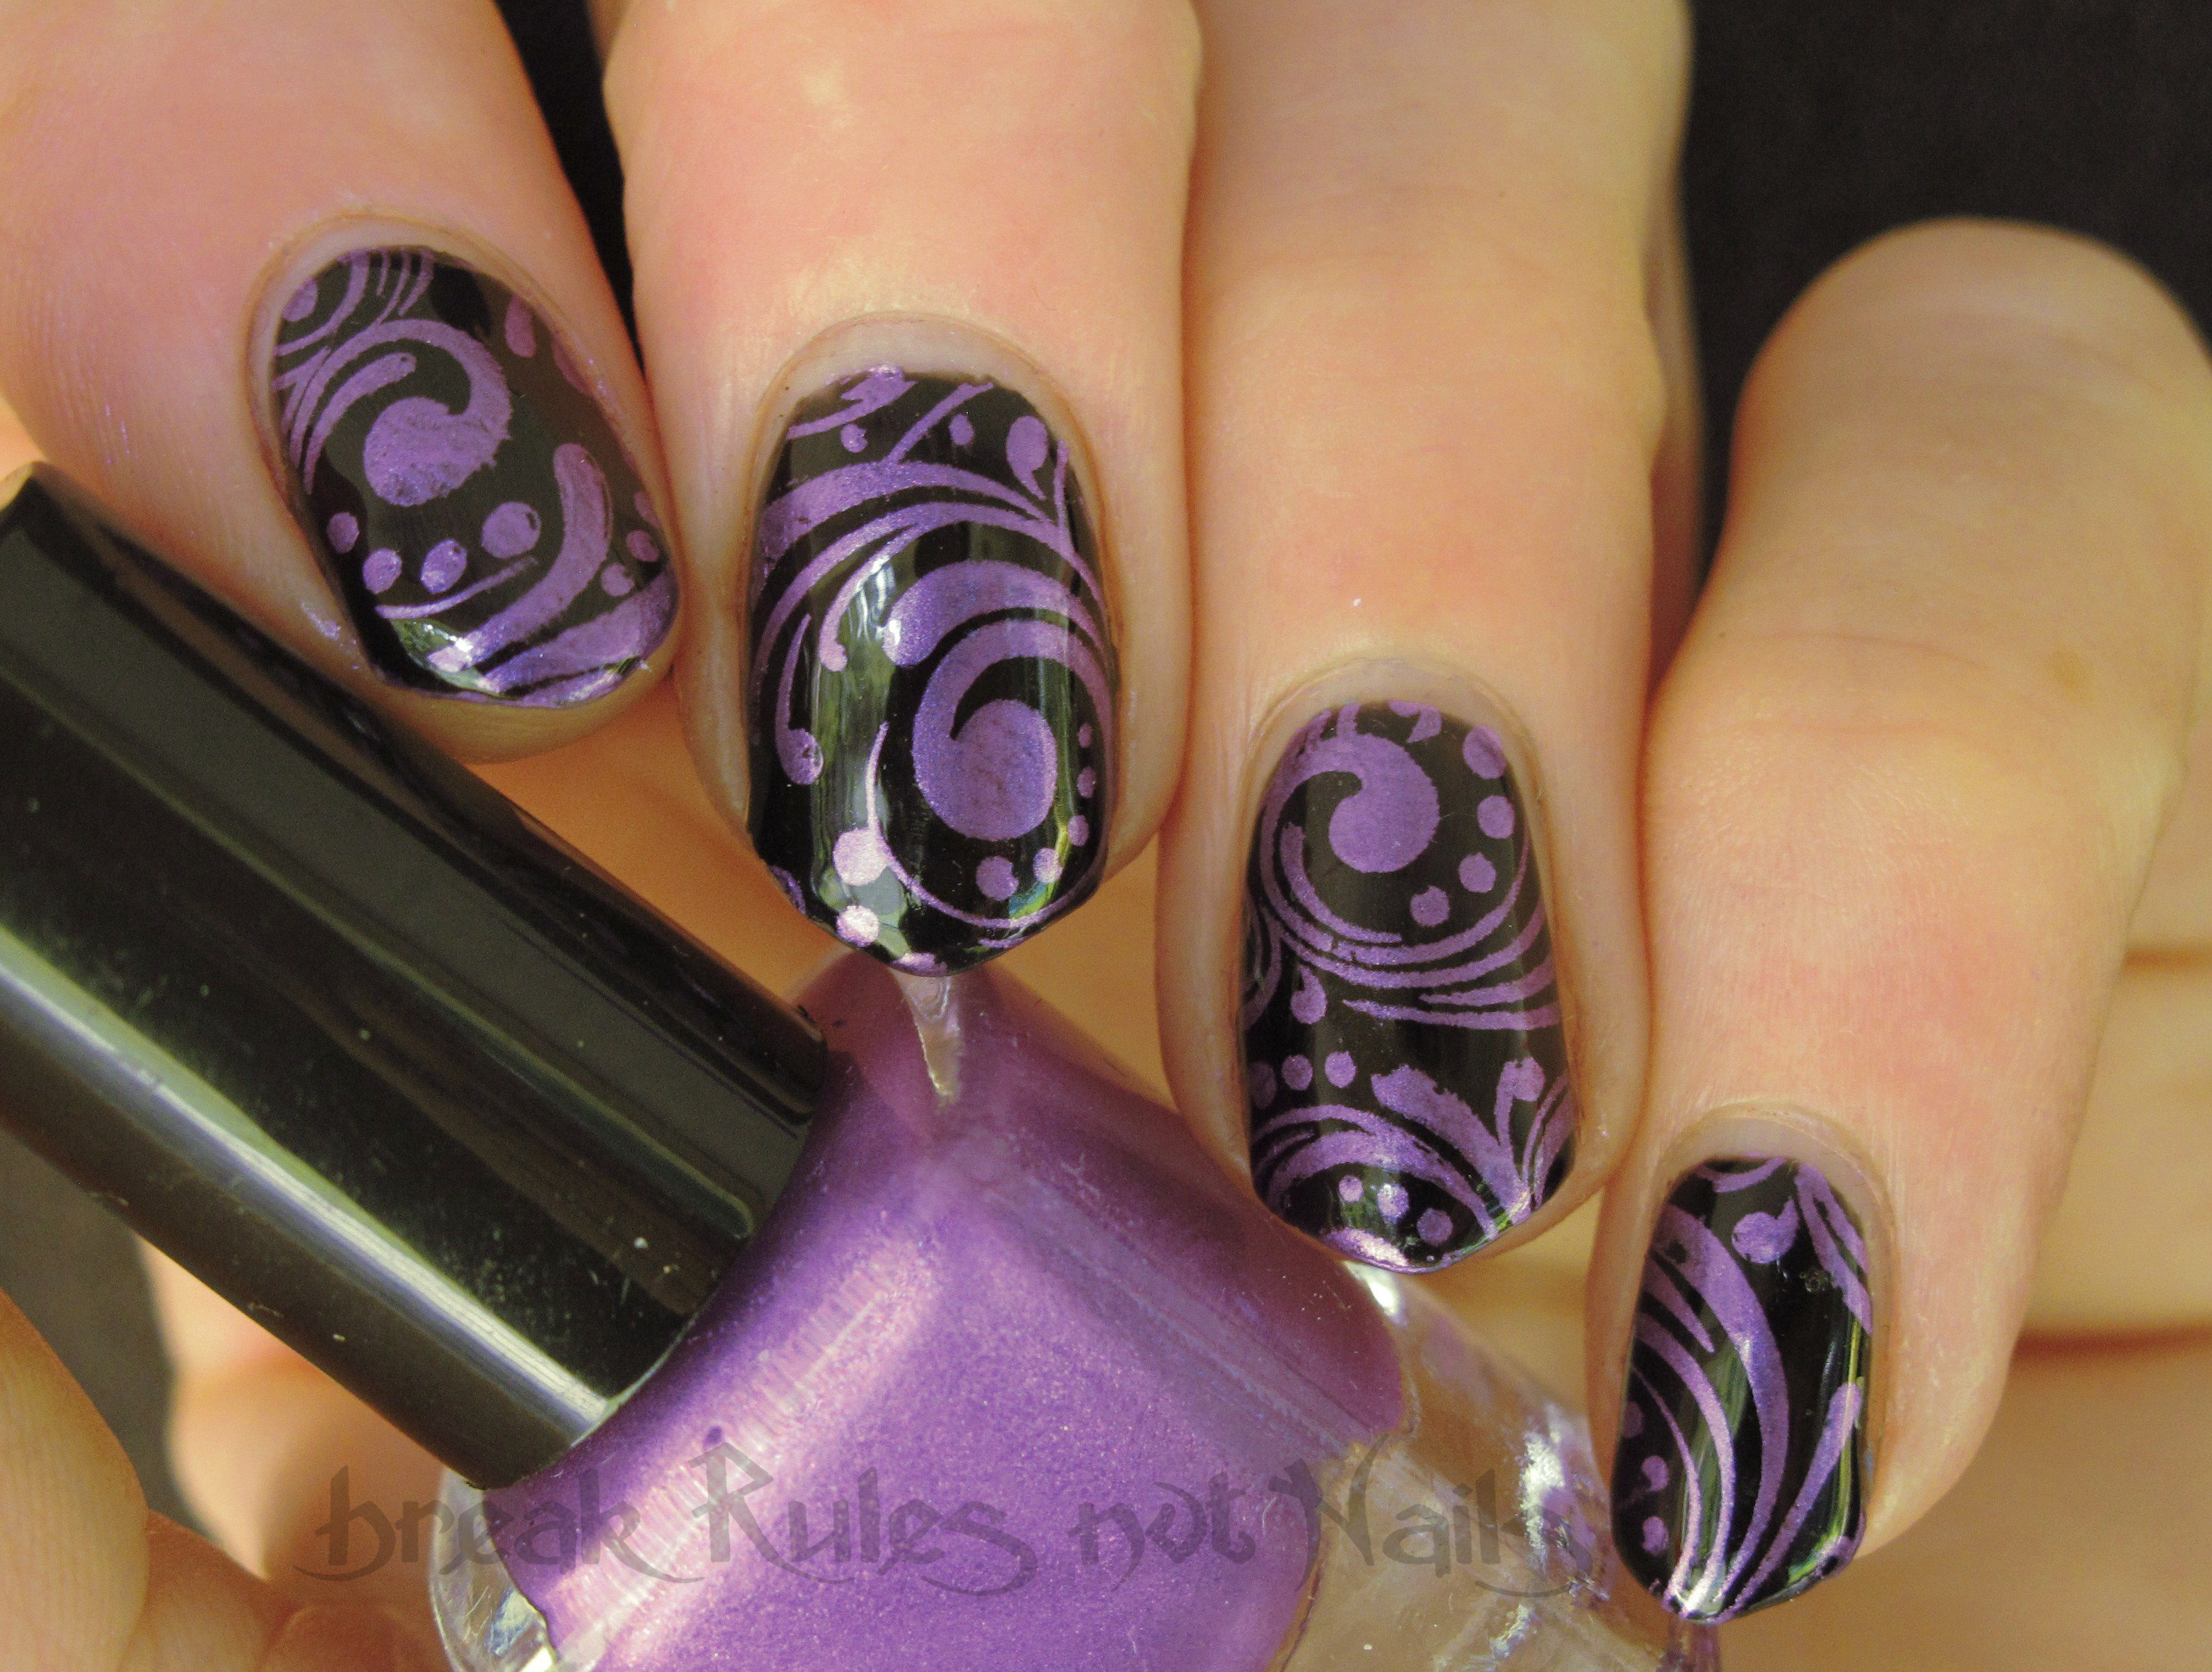 Purple and black nail art | Break rules, not nails